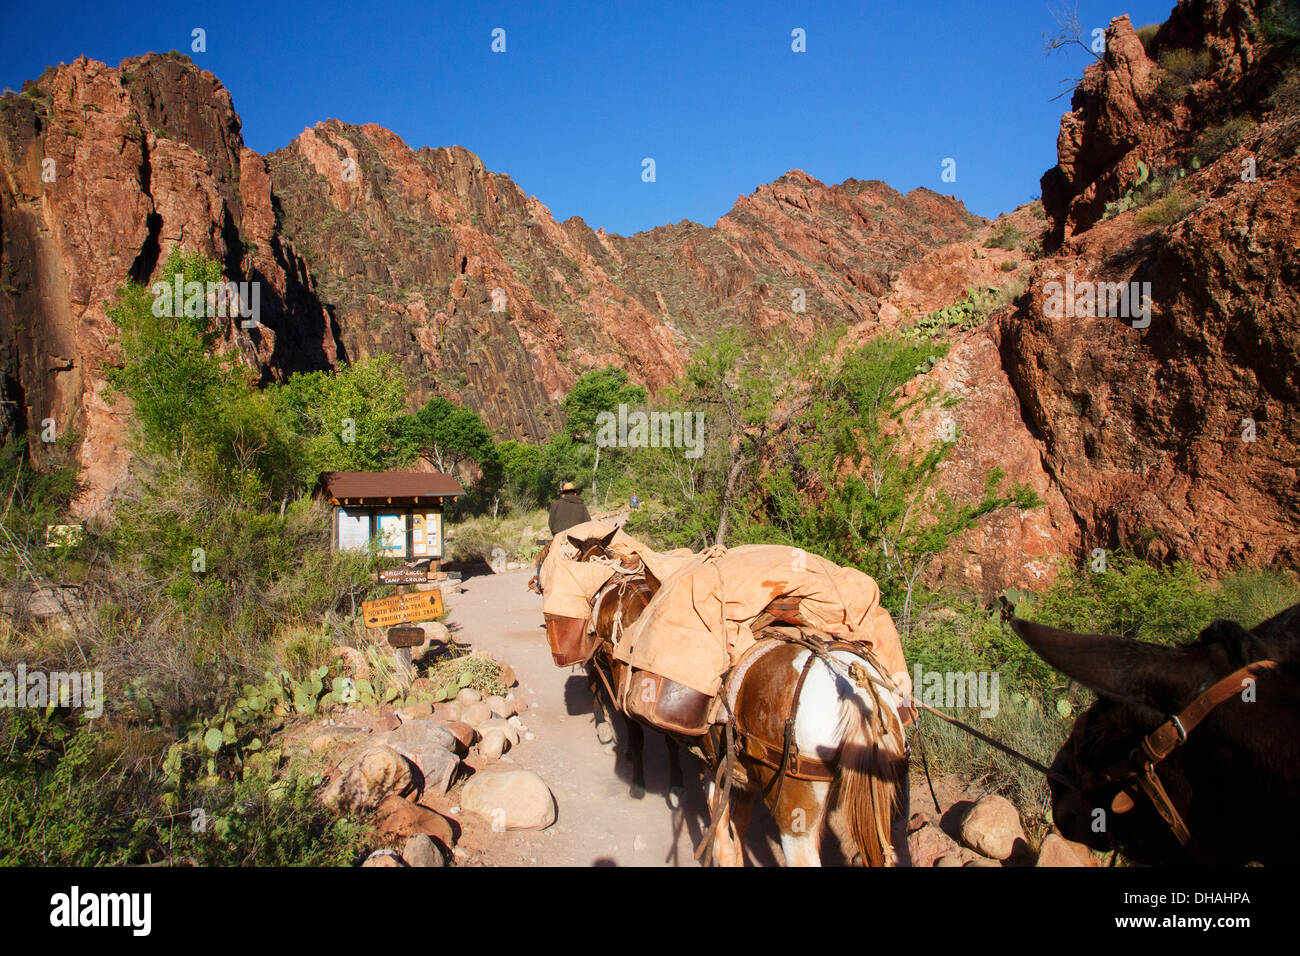 Mules on the South Kaibab Trail at the bottom of Grand Canyon National Park, Arizona. - Stock Image